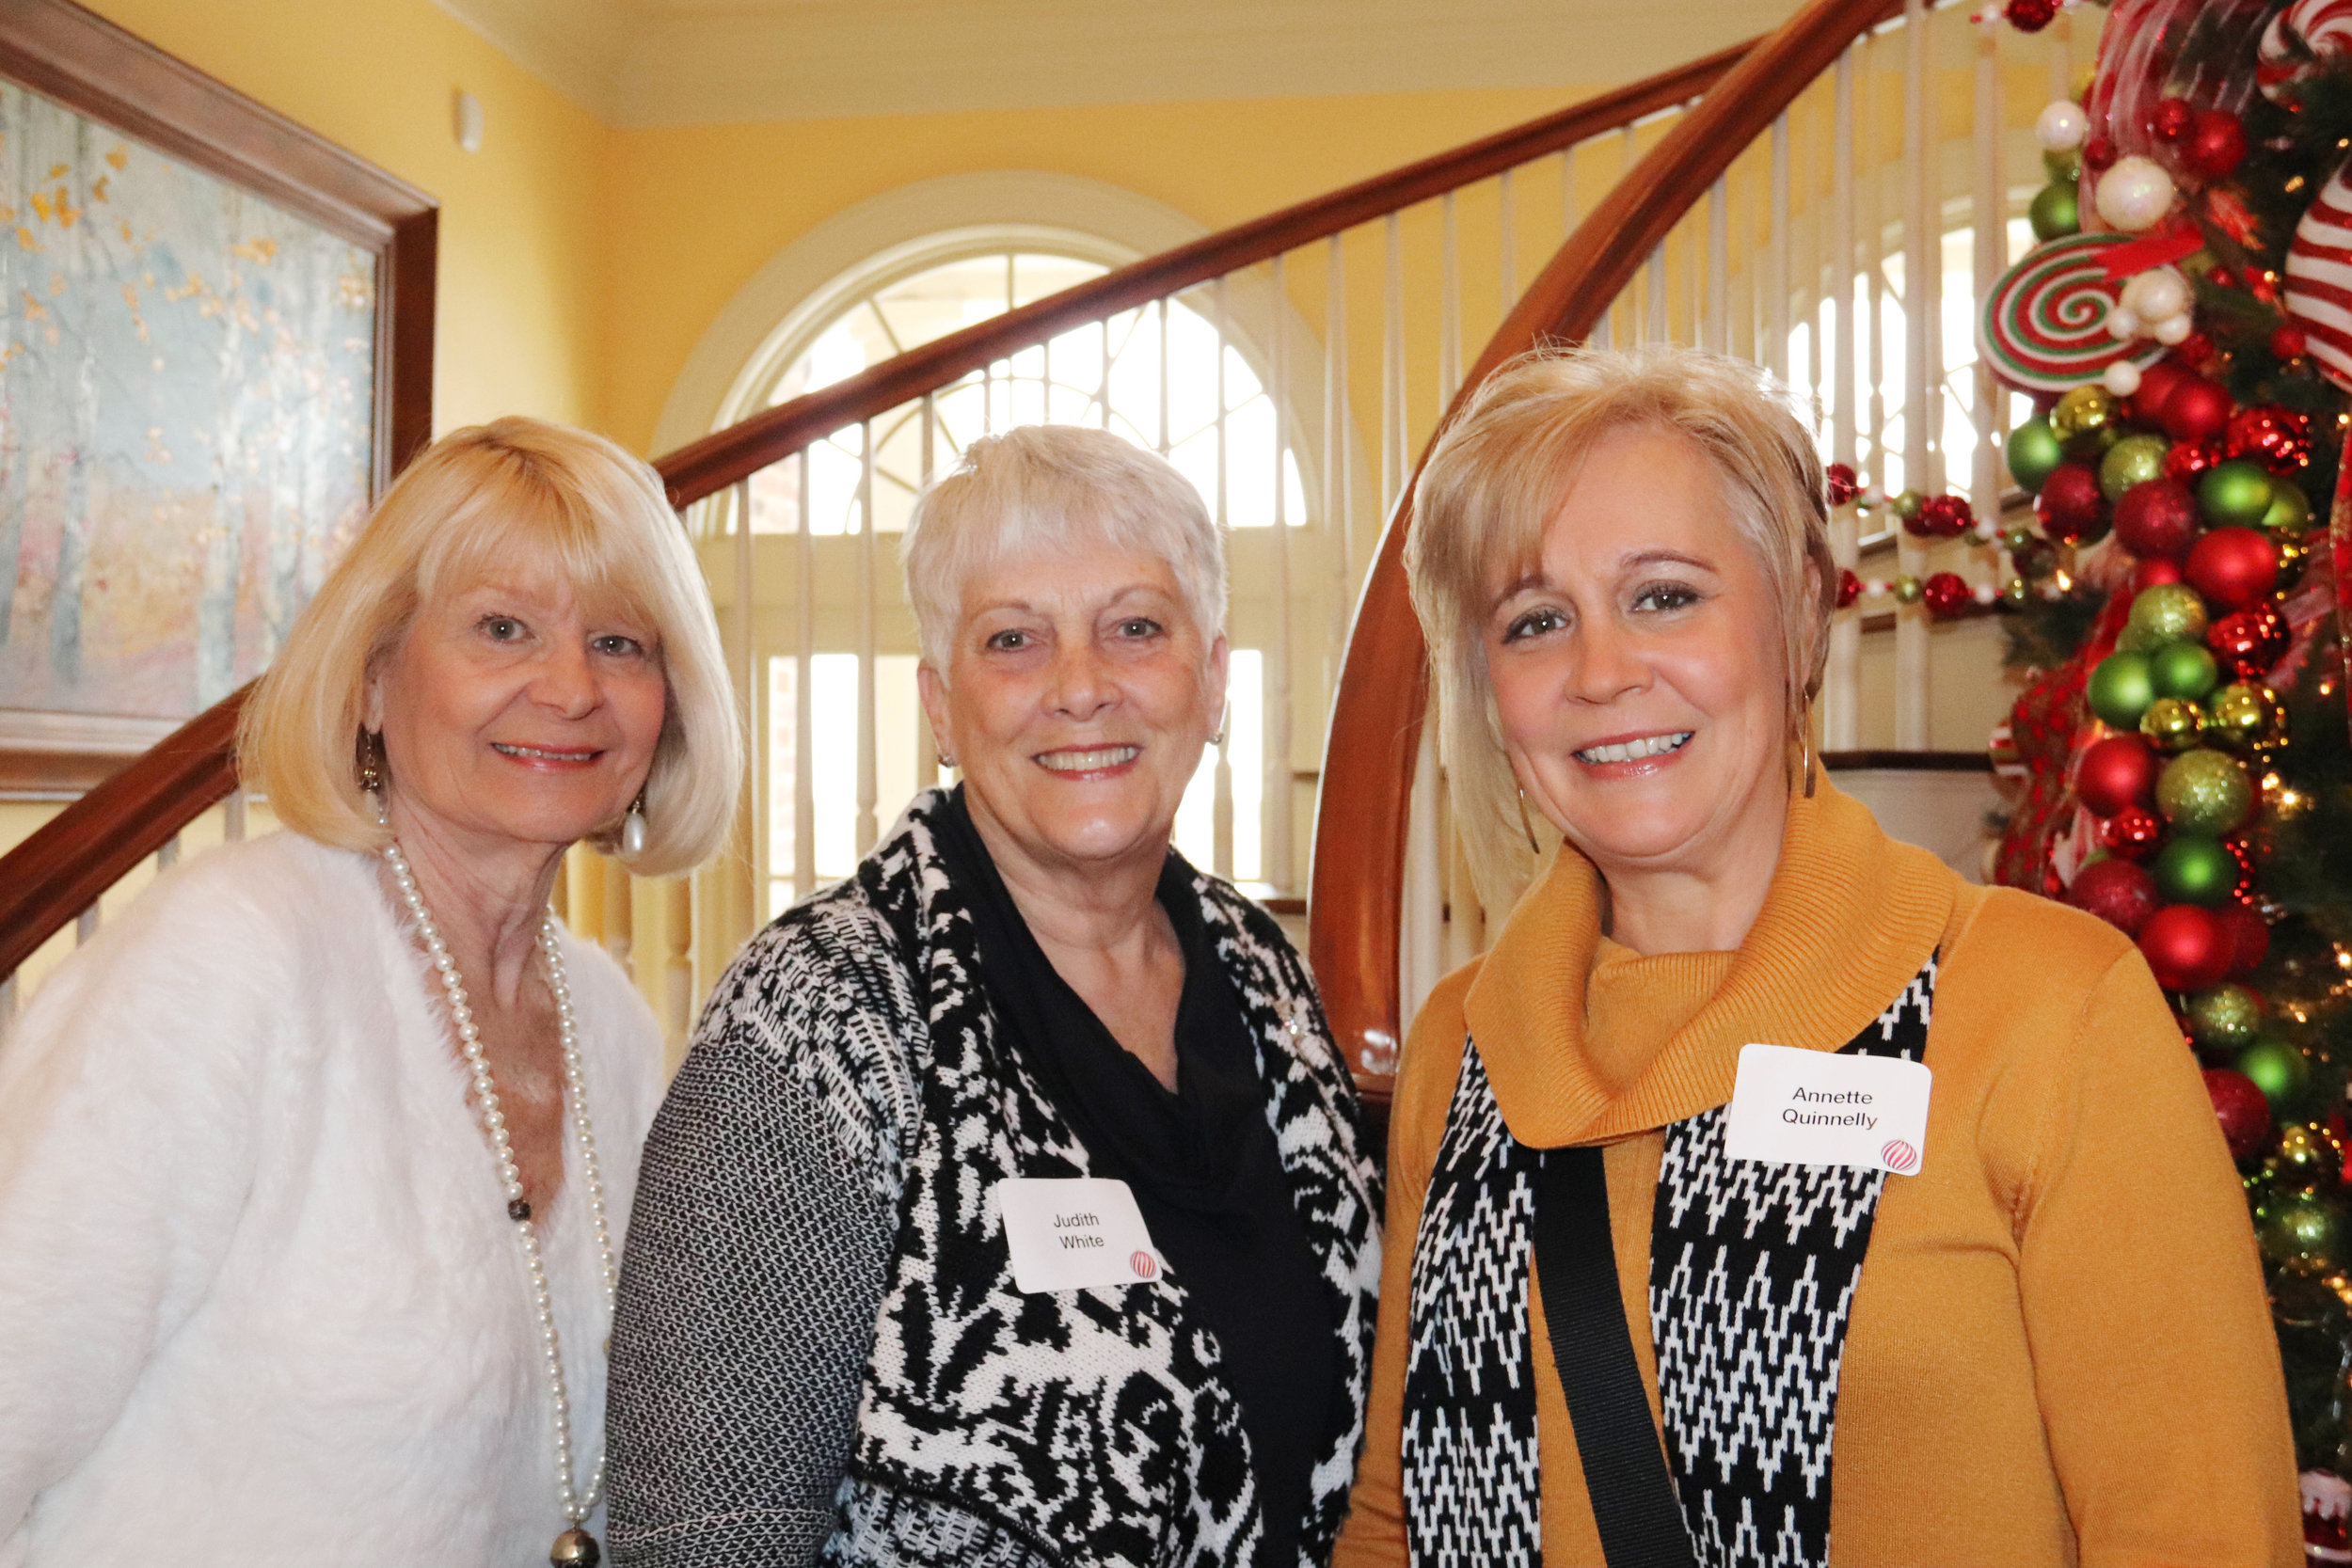 Diana Davis, Judith White and Annette Quinnelly